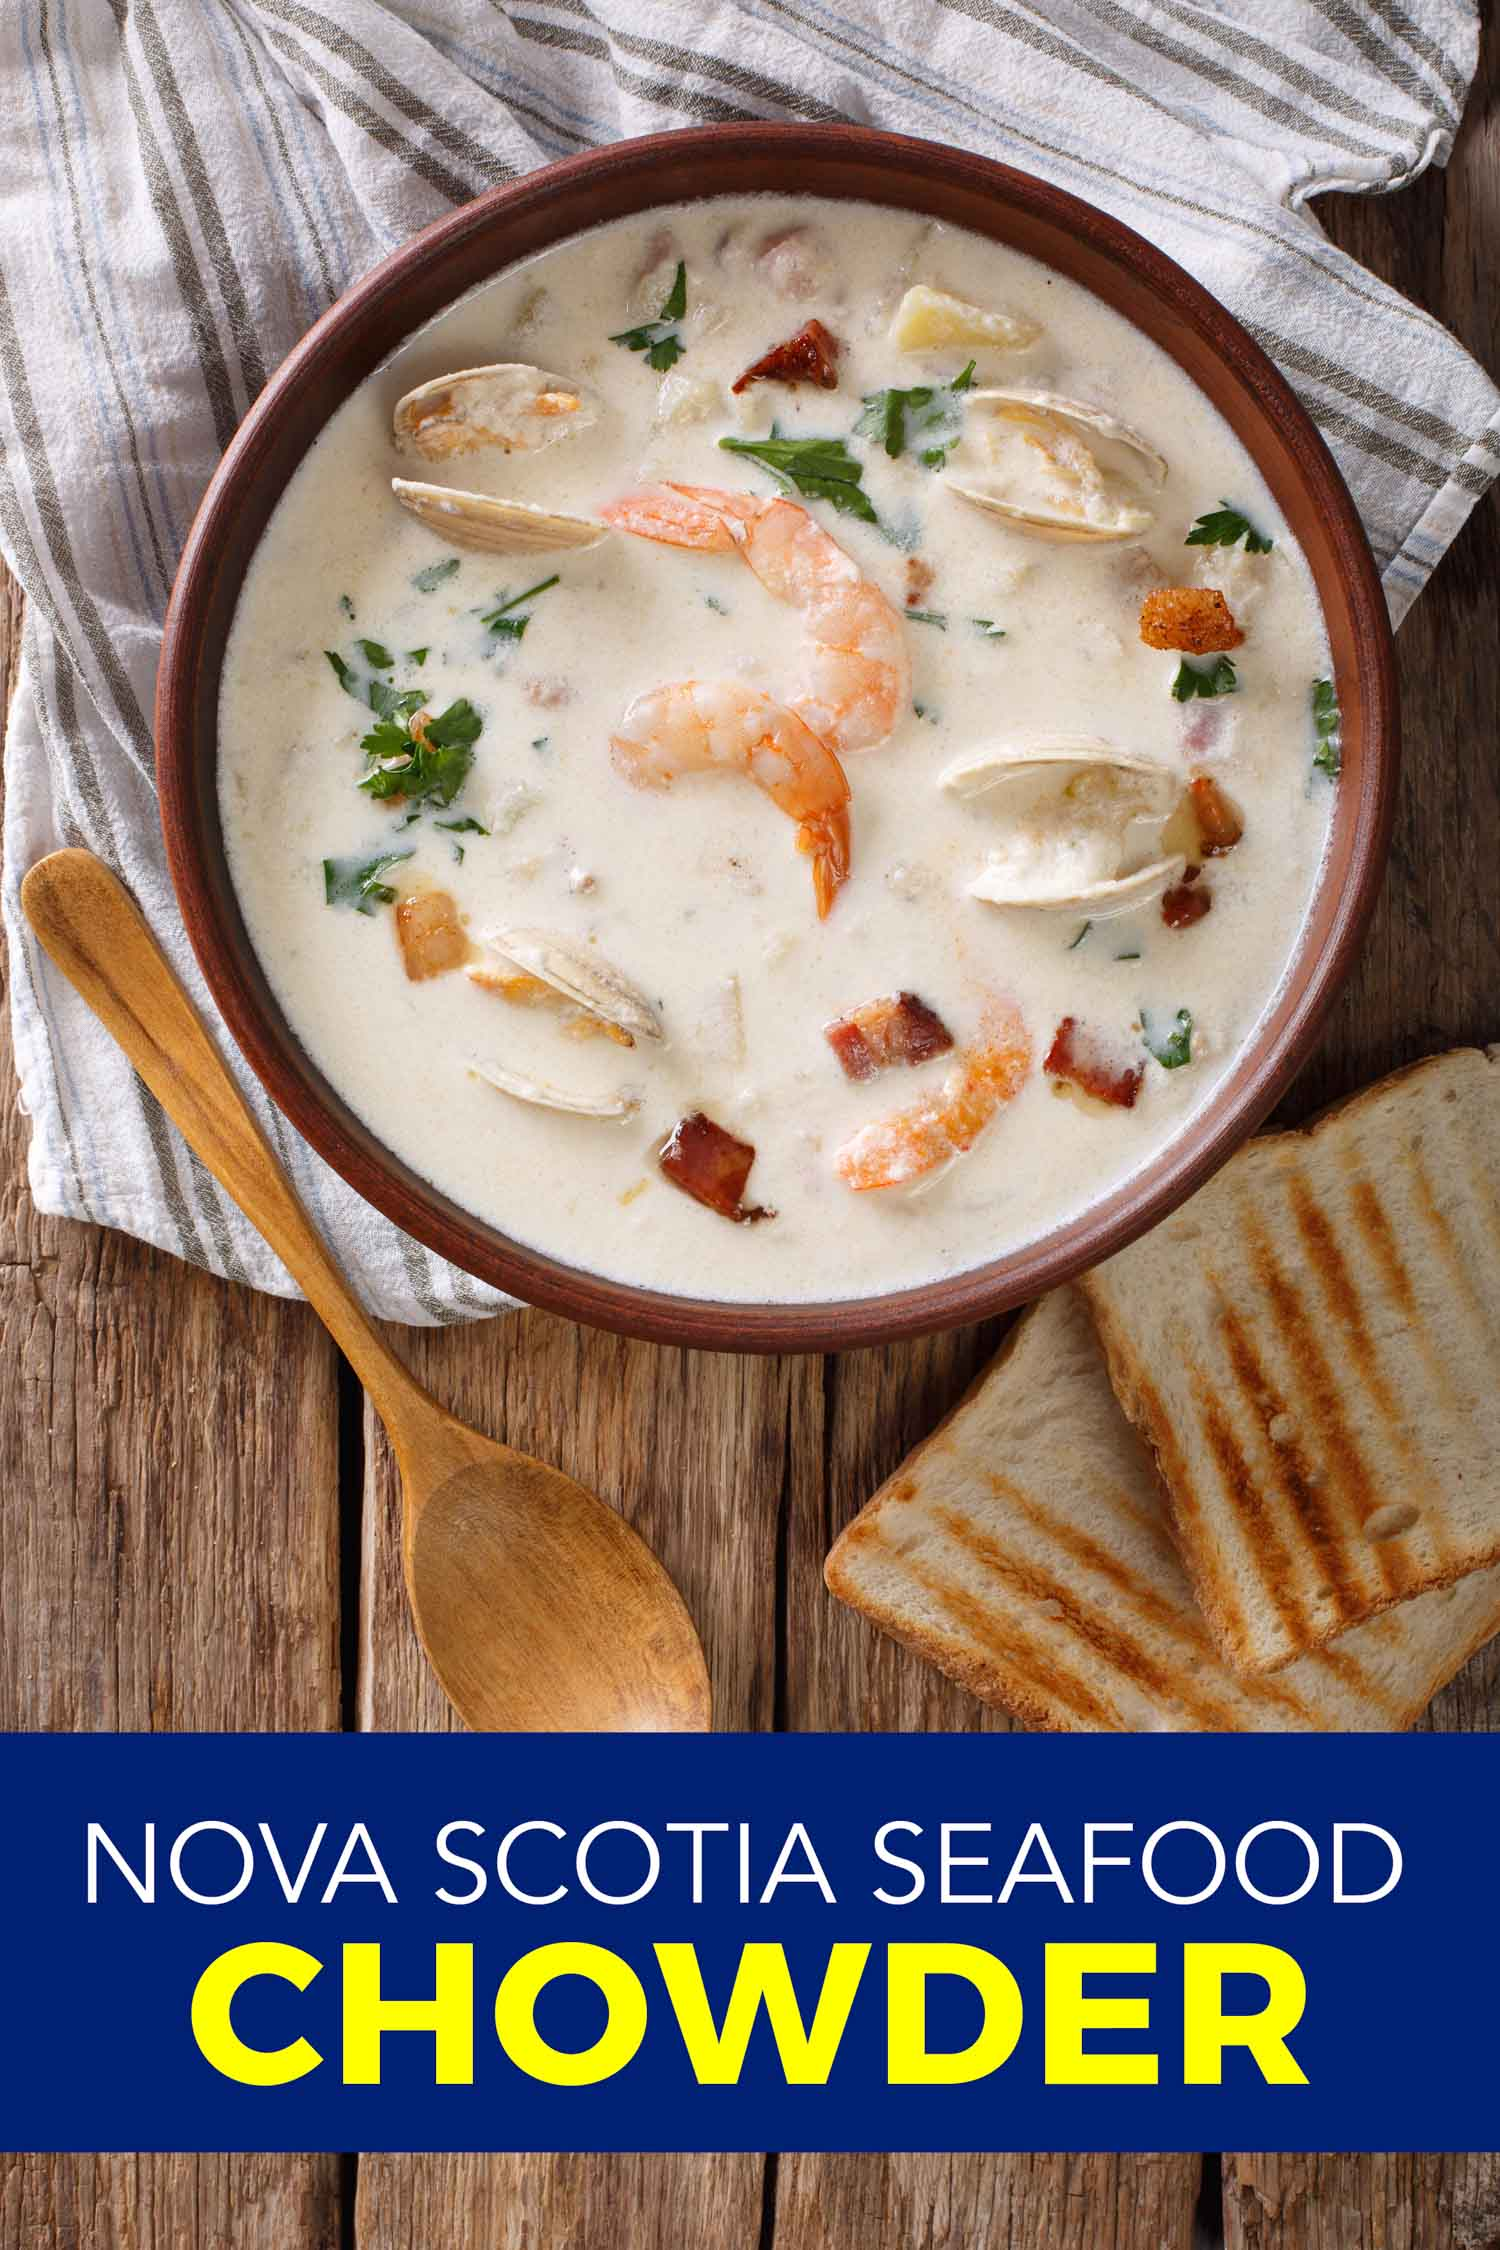 Seafood chowder in a dark brown bowl